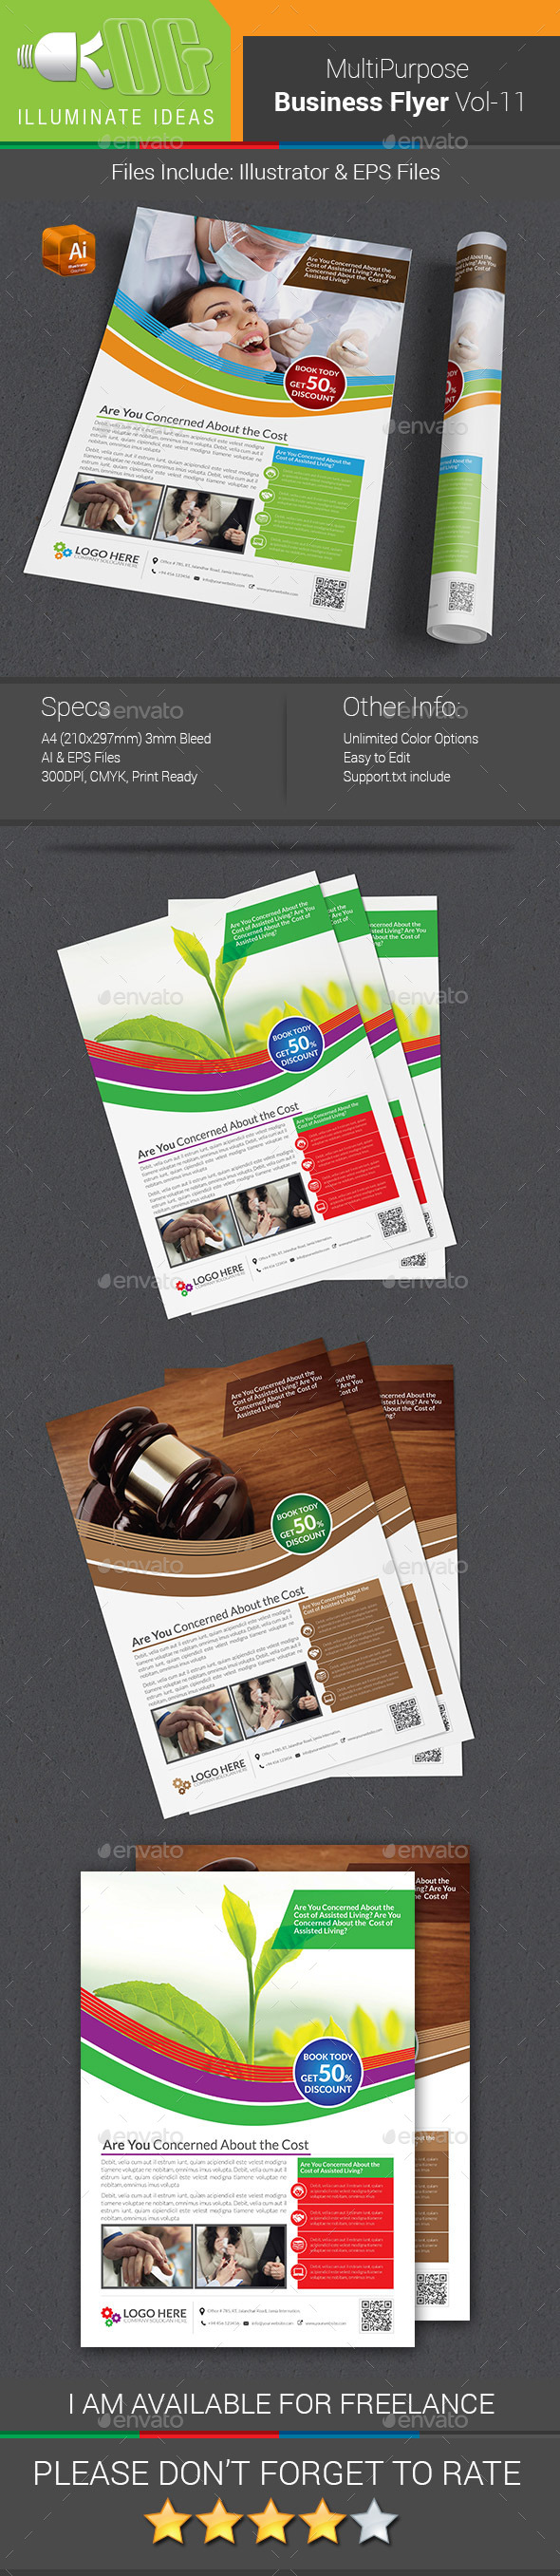 Multipurpose Business Flyer Template Vol-11 - Corporate Flyers